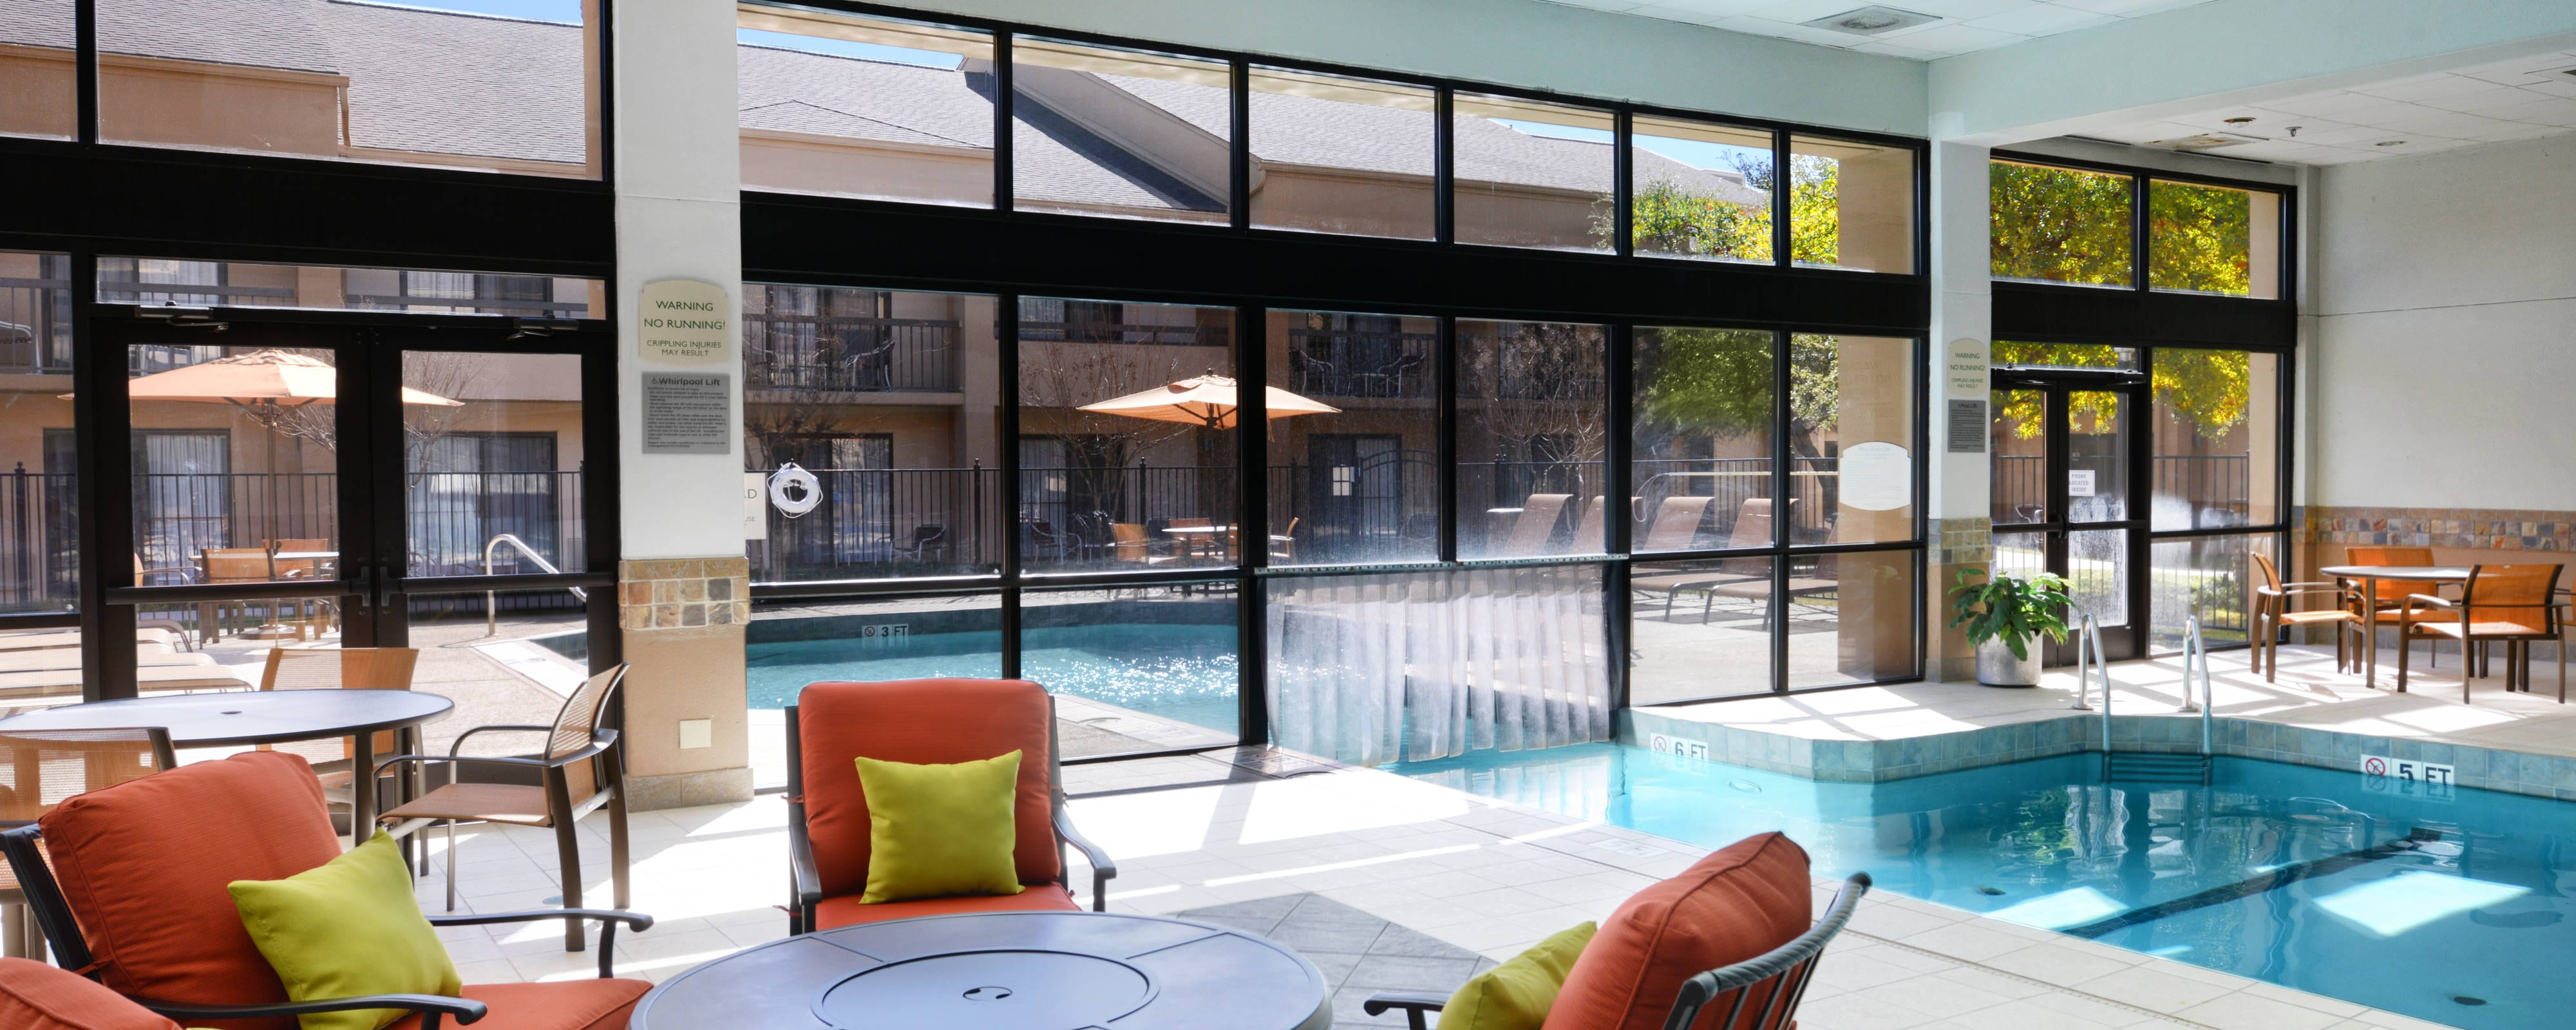 Hotels In Arlington Tx With Indoor Pool Courtyard Dallas Arlington